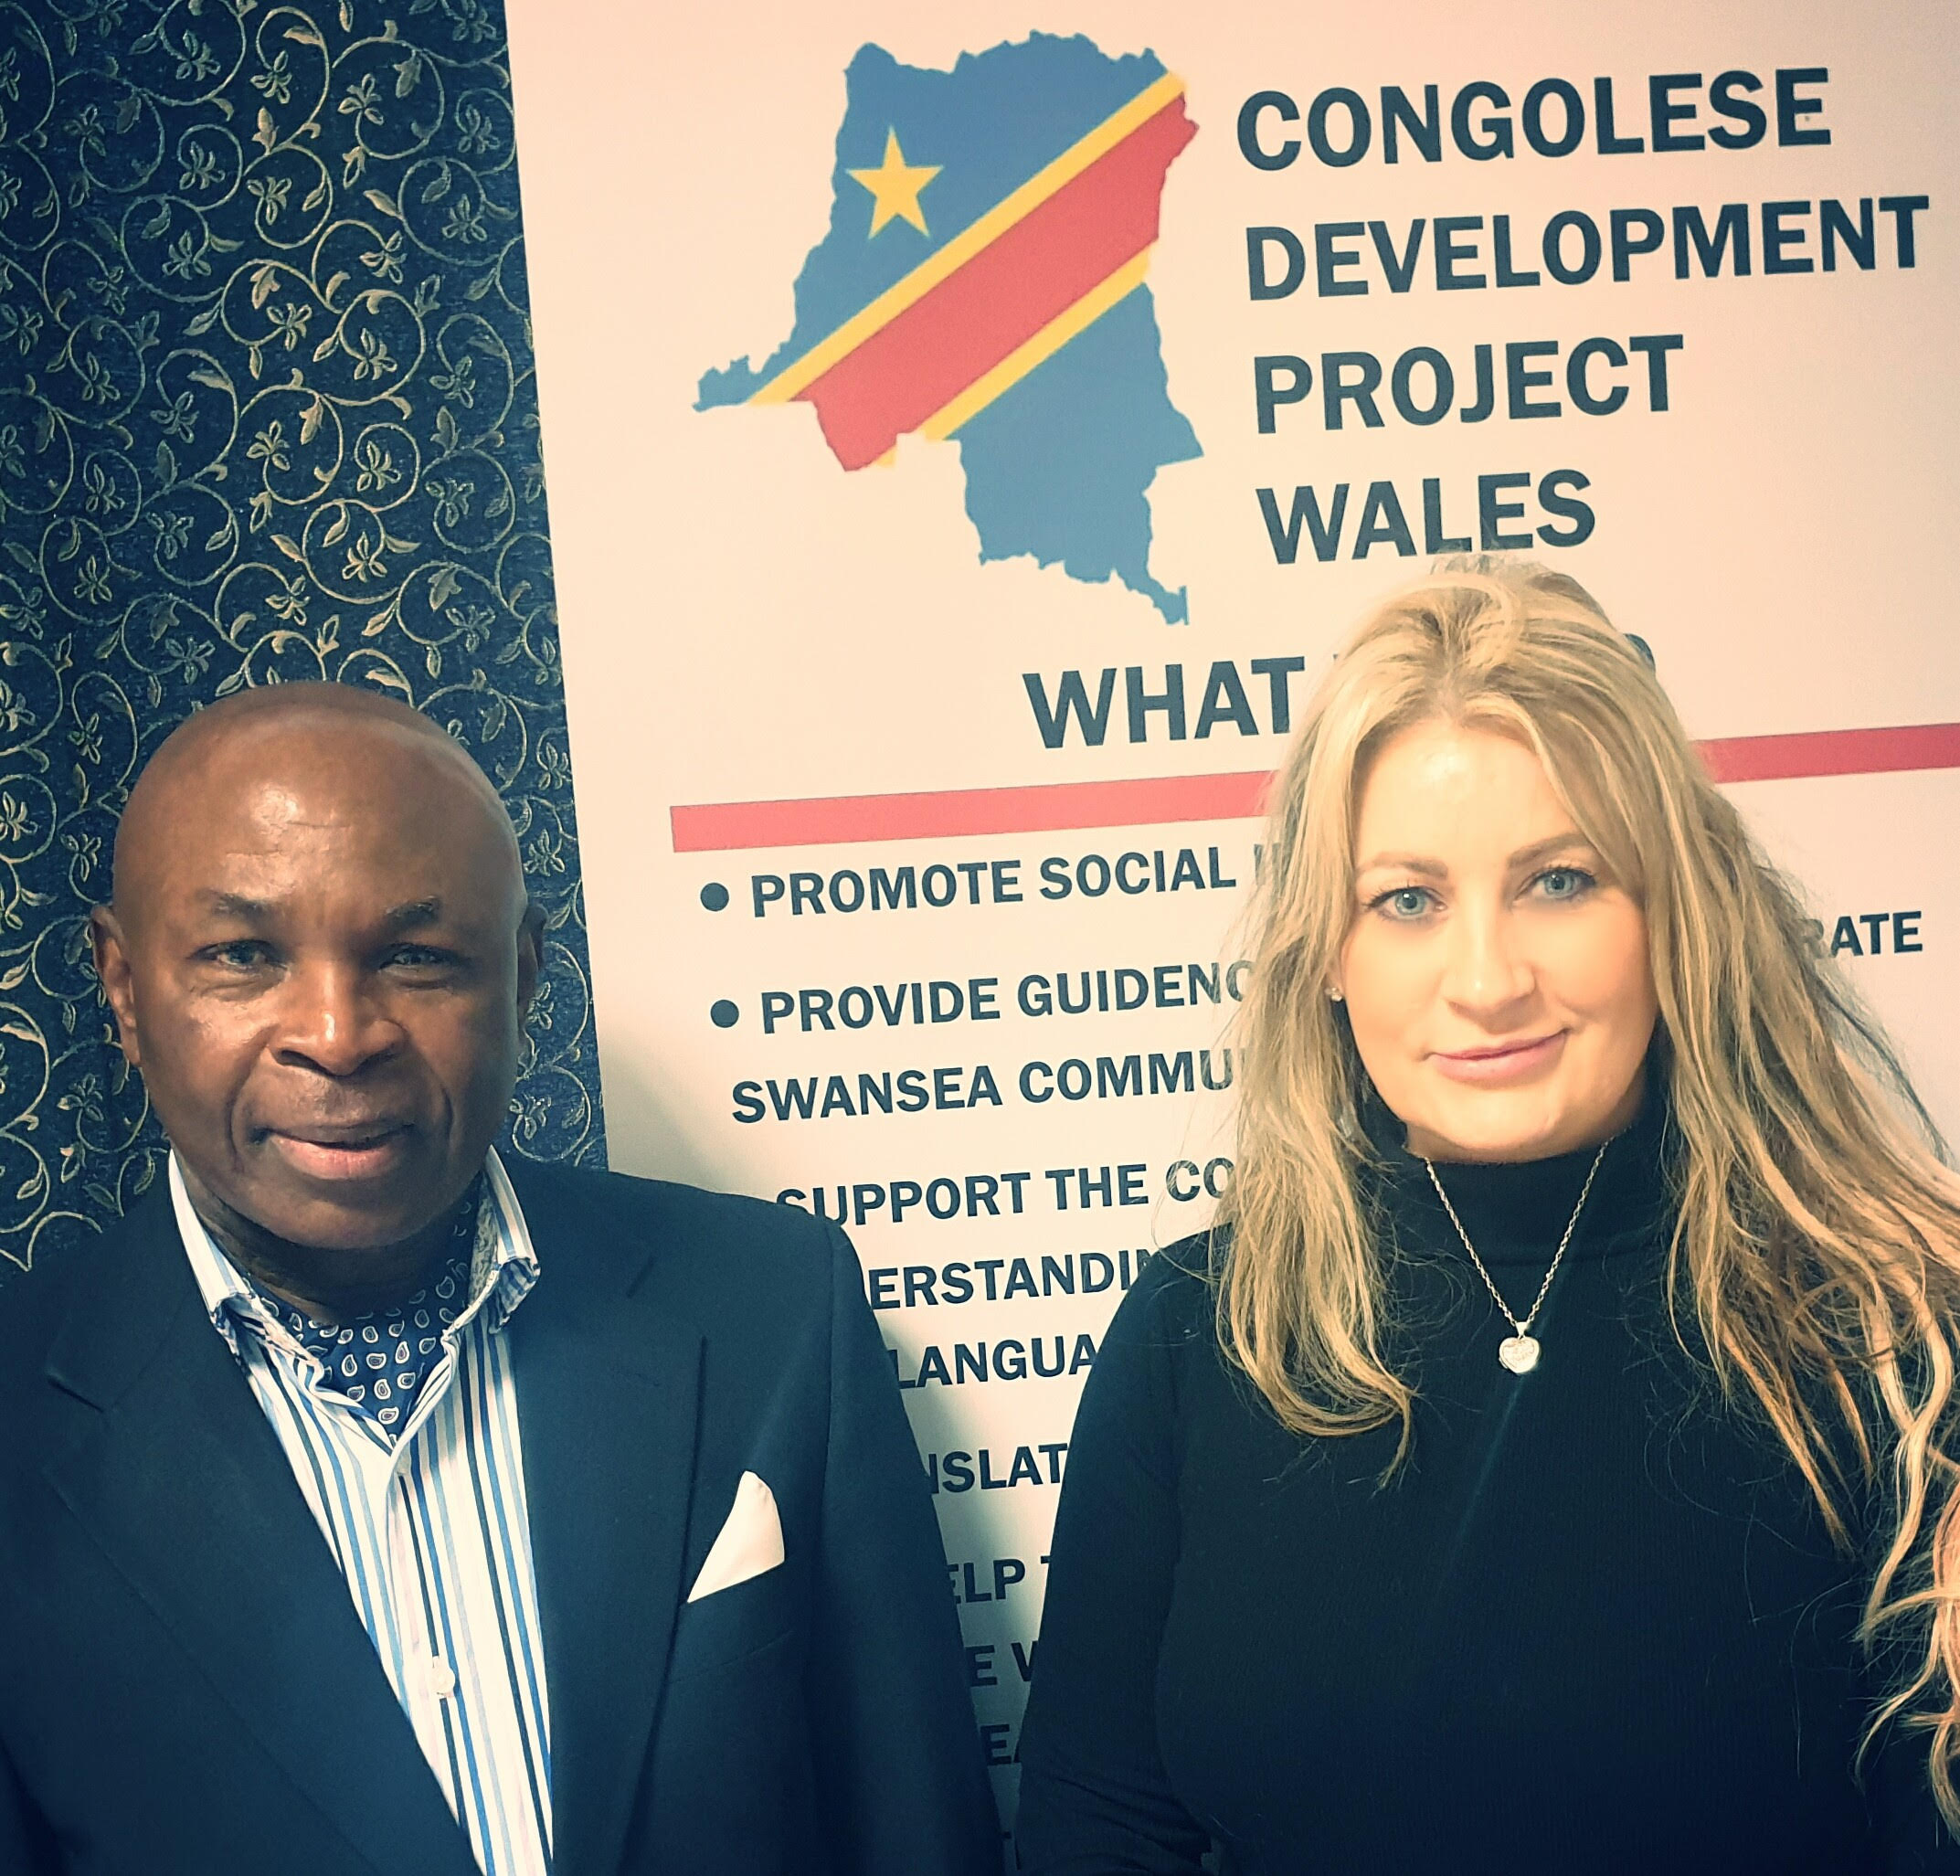 Congolese Development Project